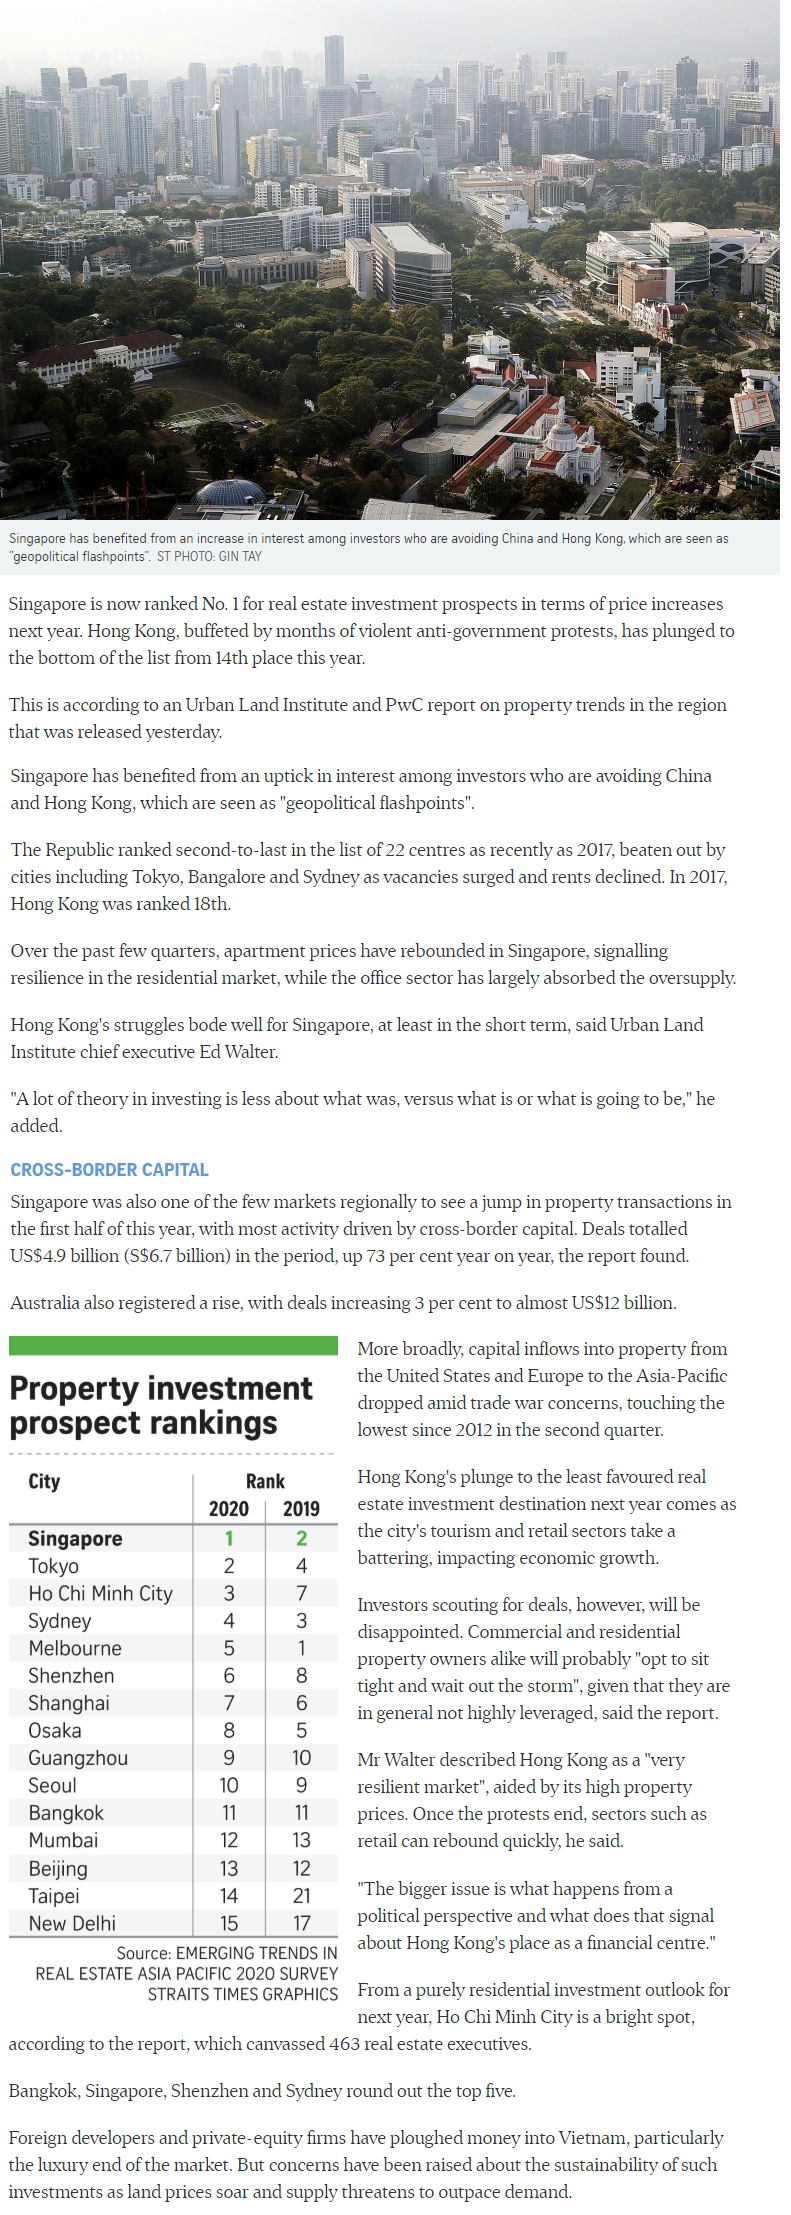 Leedon Green - Singapore Tops Region For Property Investment Prospects